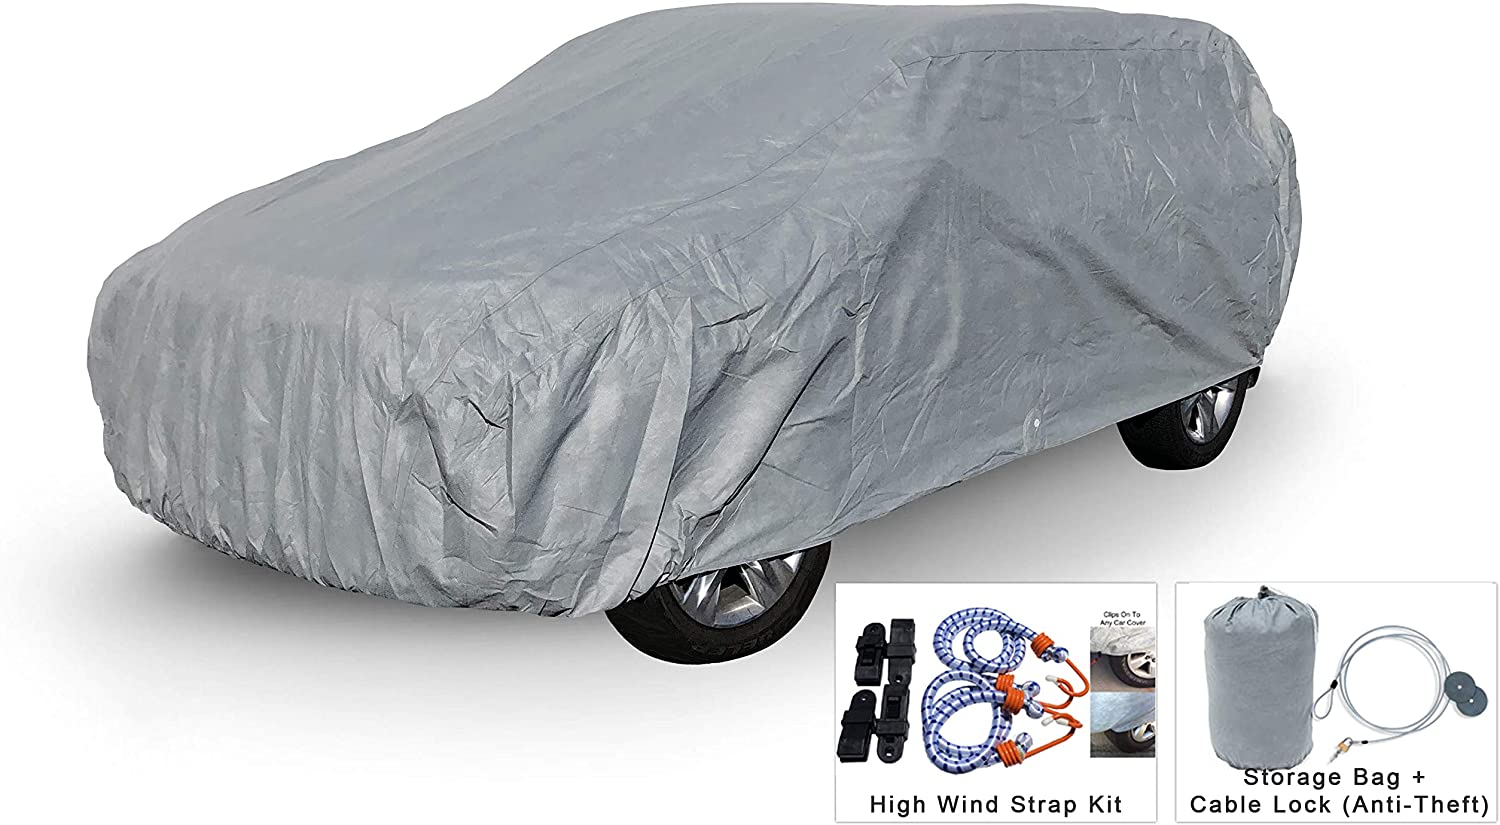 Weatherproof SUV Car Cover Compatible with Acura MDX 2000-2019 - 5L Outdoor & Indoor - Protect from Rain, Snow, Hail, UV Rays, Sun - Fleece Lining - Anti-Theft Cable Lock, Bag & Wind Straps